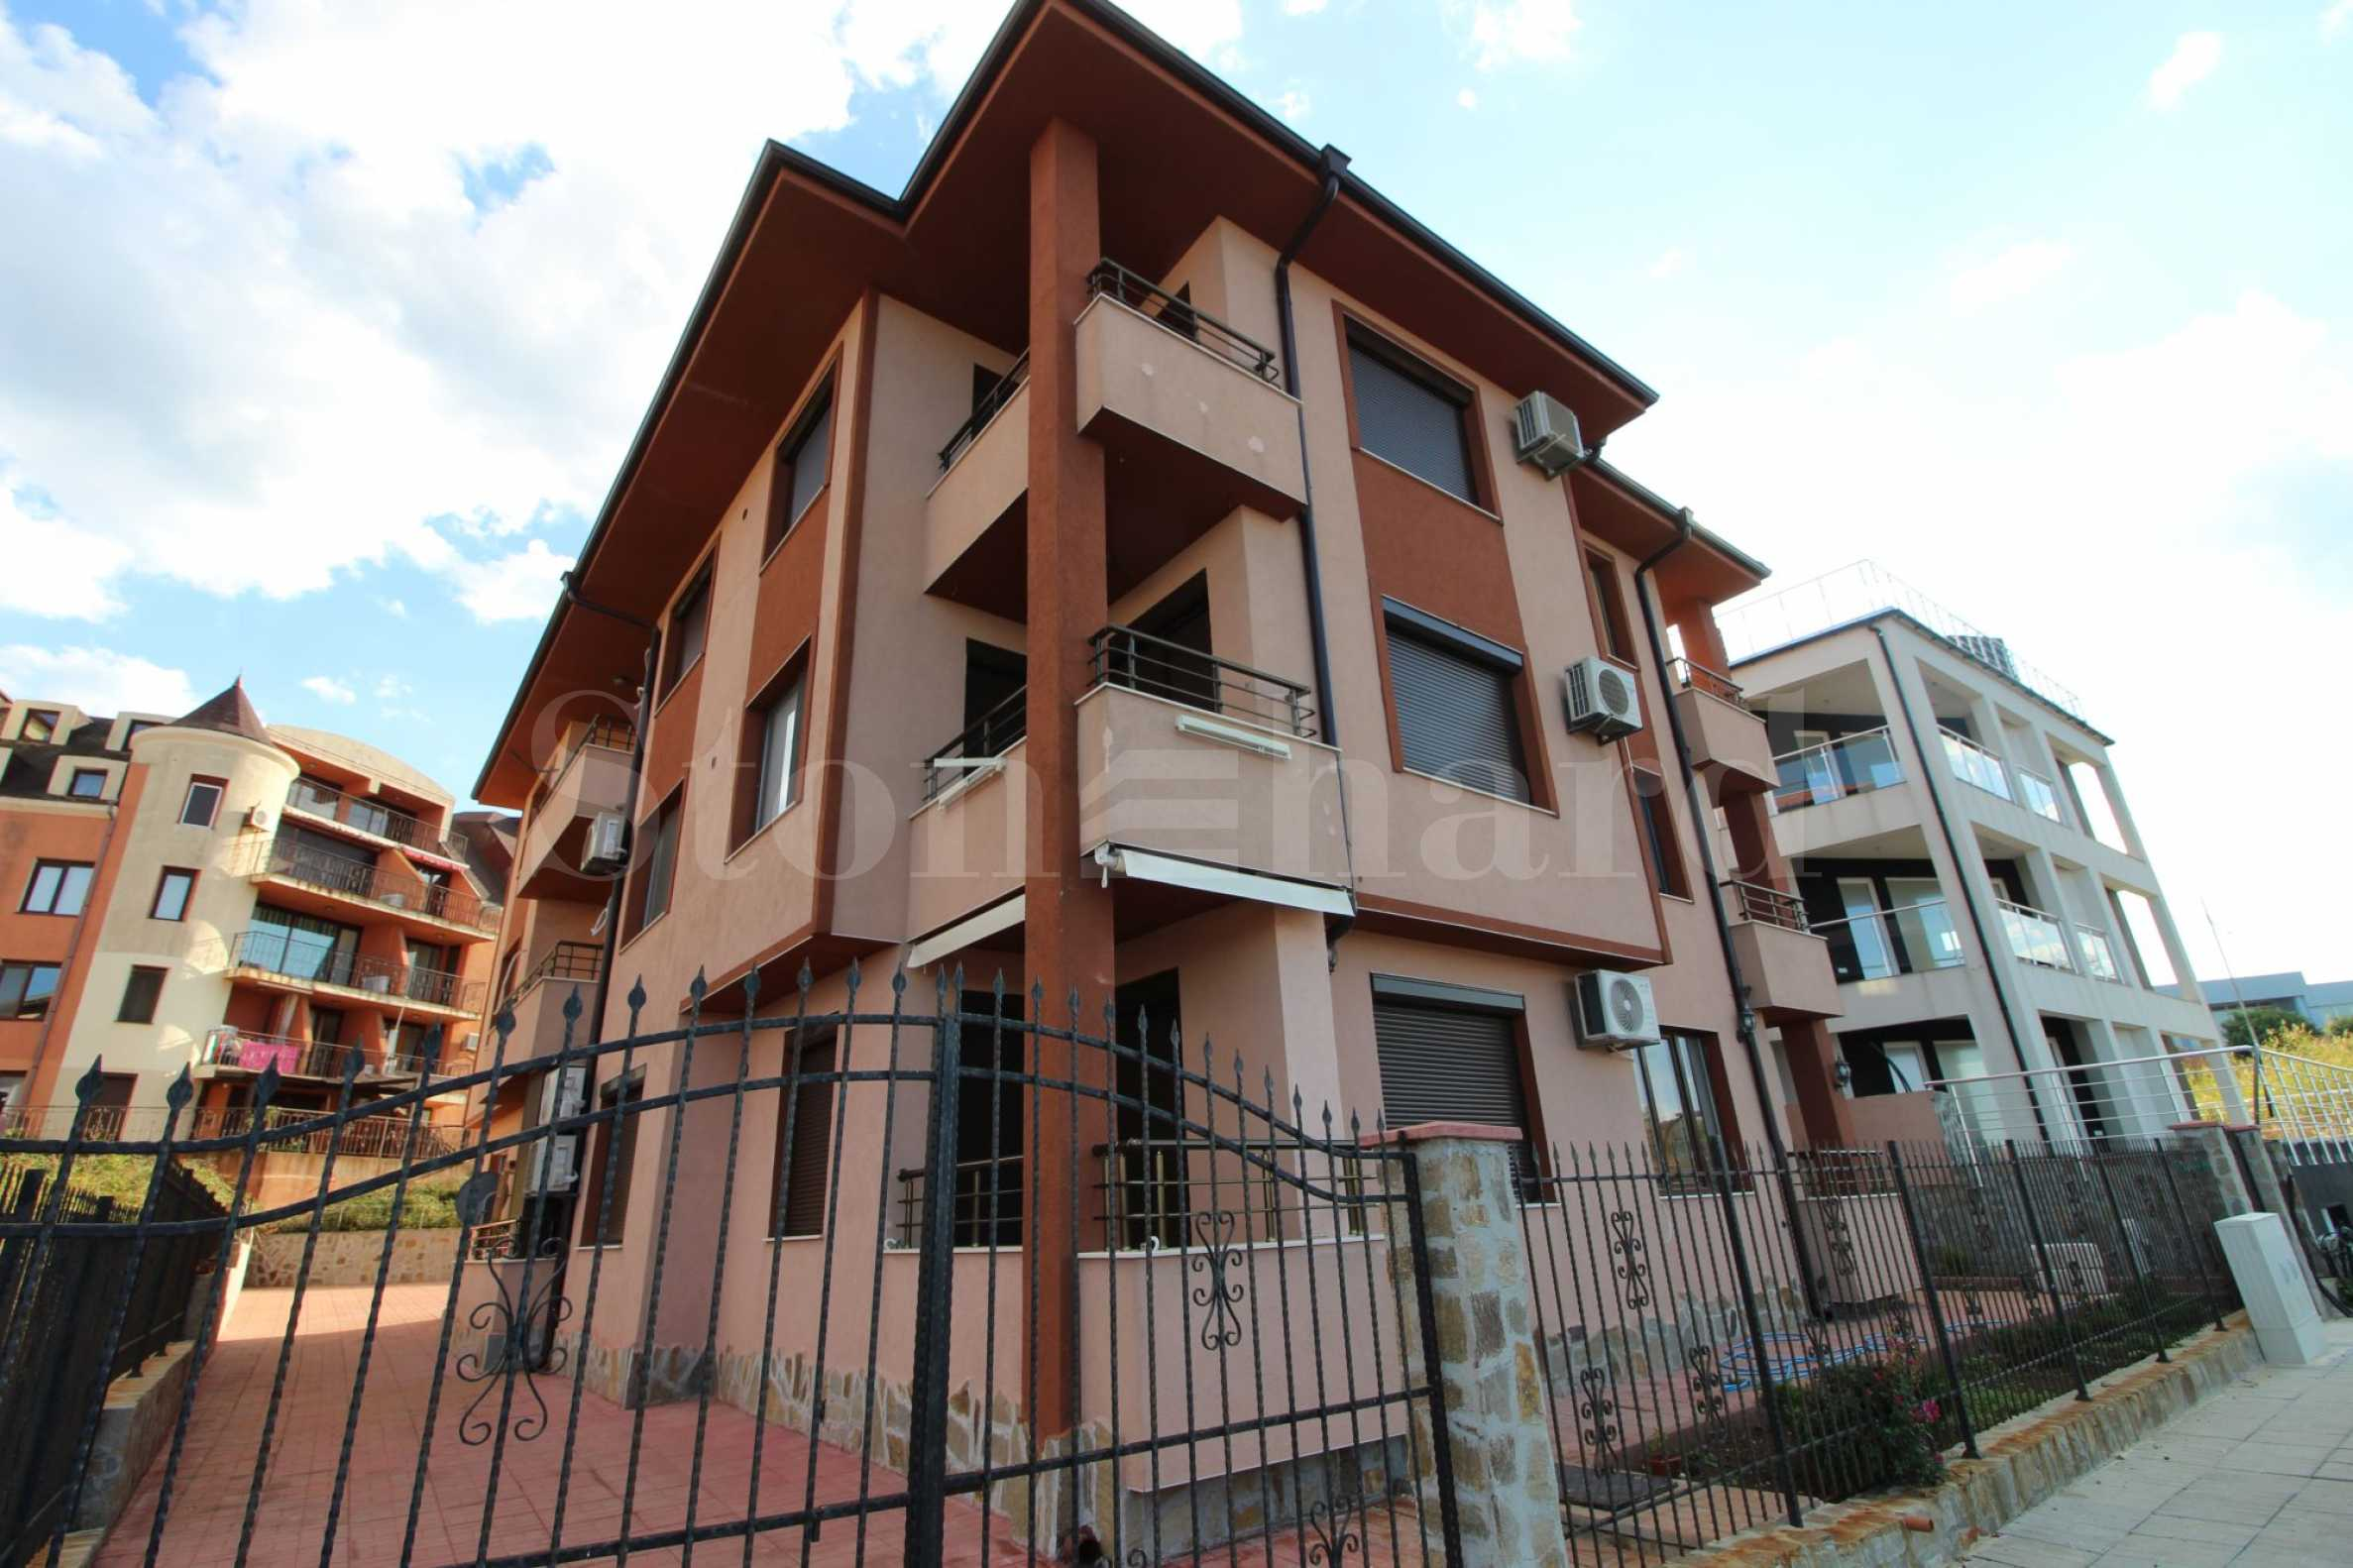 New building in Tsarevo. 1-bedroom turnkey apartments. No maintenance fee1 - Stonehard